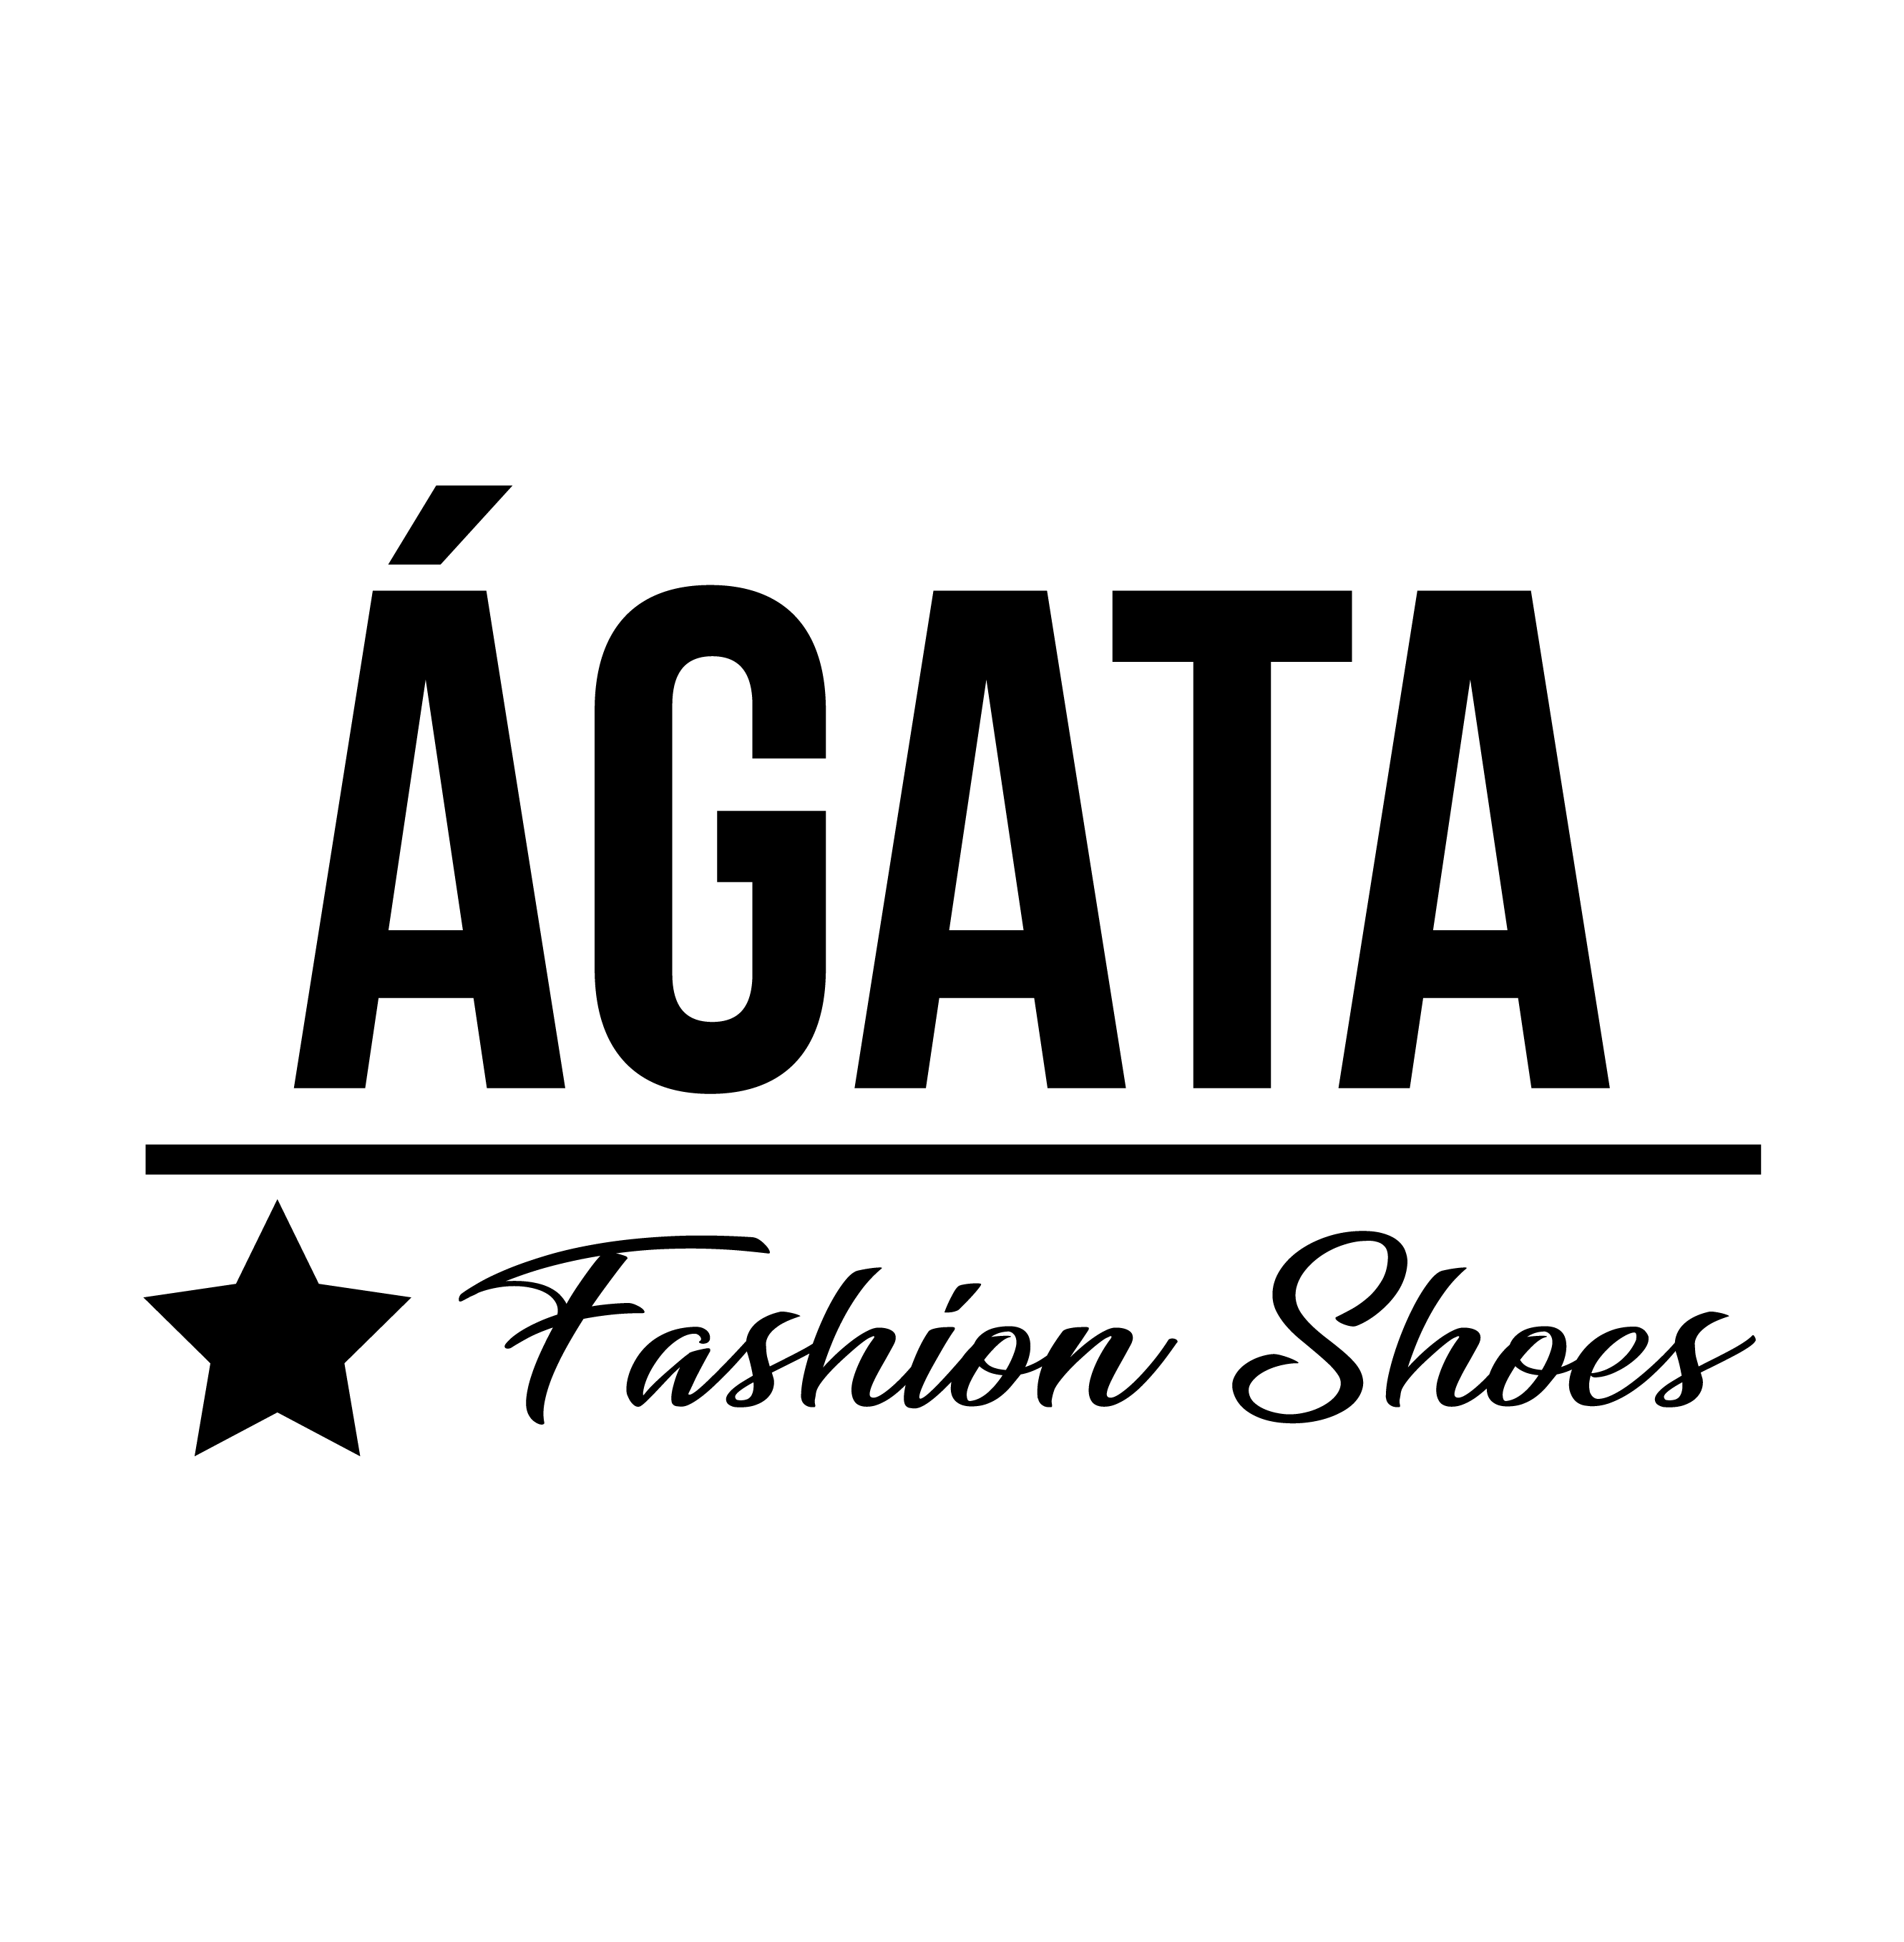 https://laherradura.com.co/wp-content/uploads/2020/08/agat-shoes.png